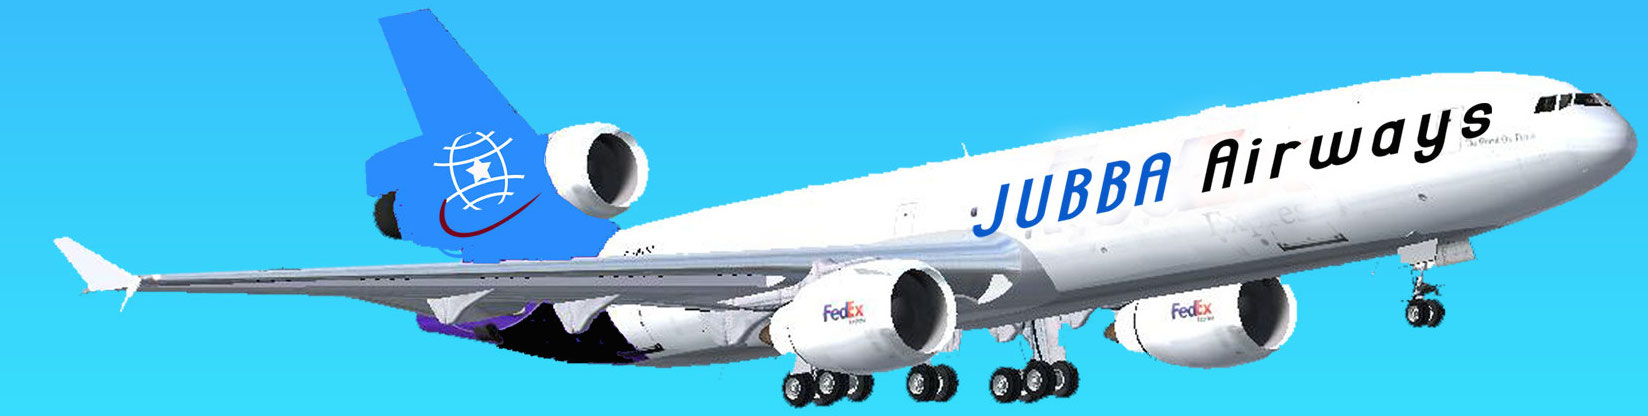 Jubba Airways